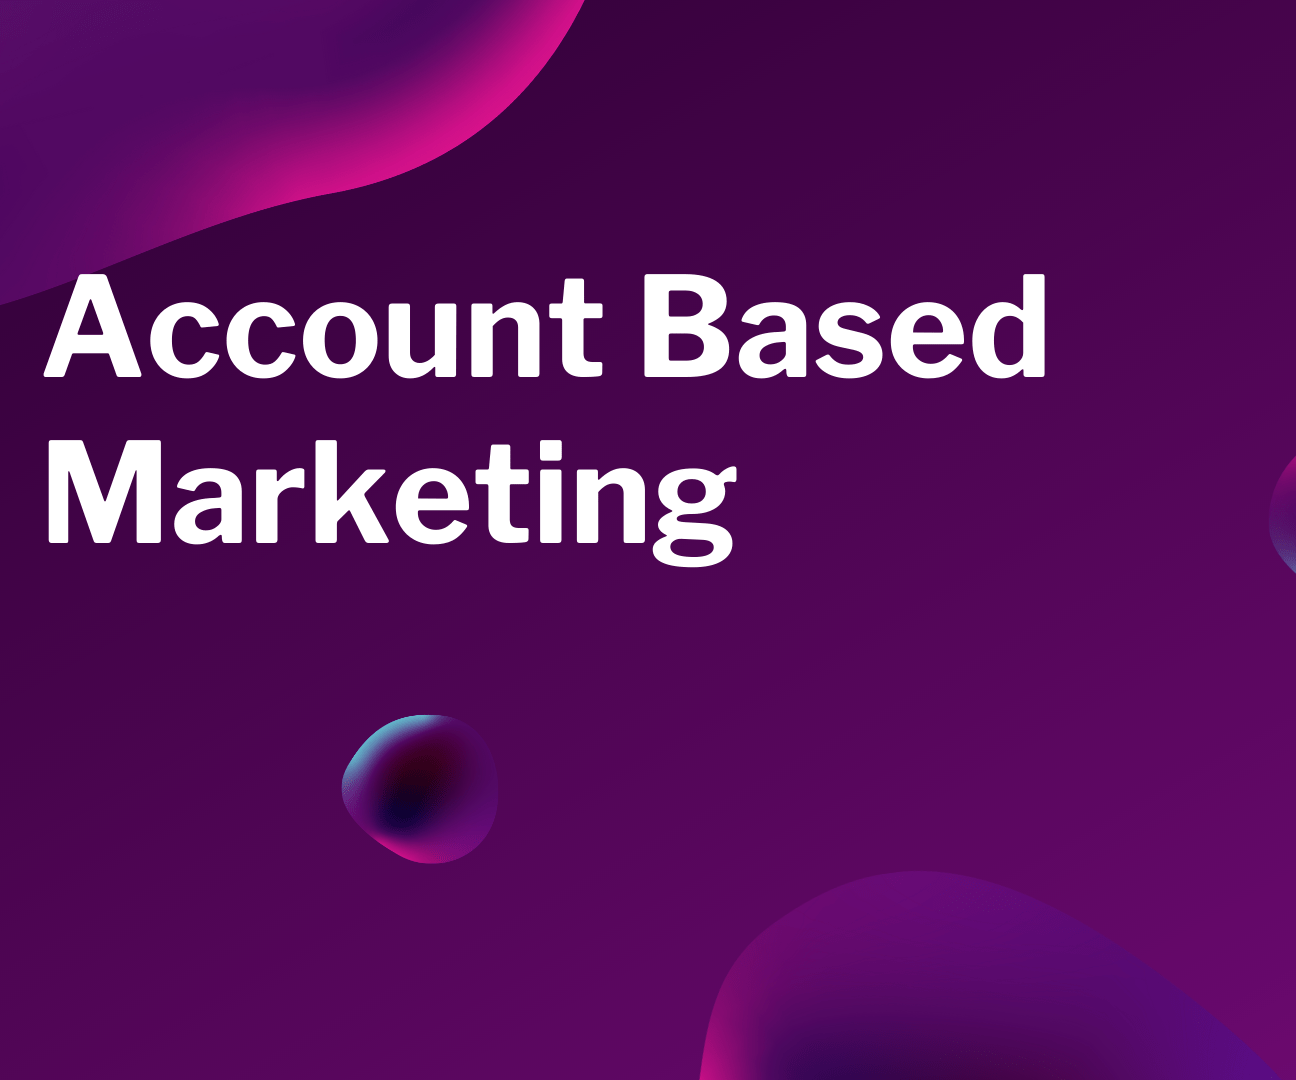 Account-Based Marketing Overview Video